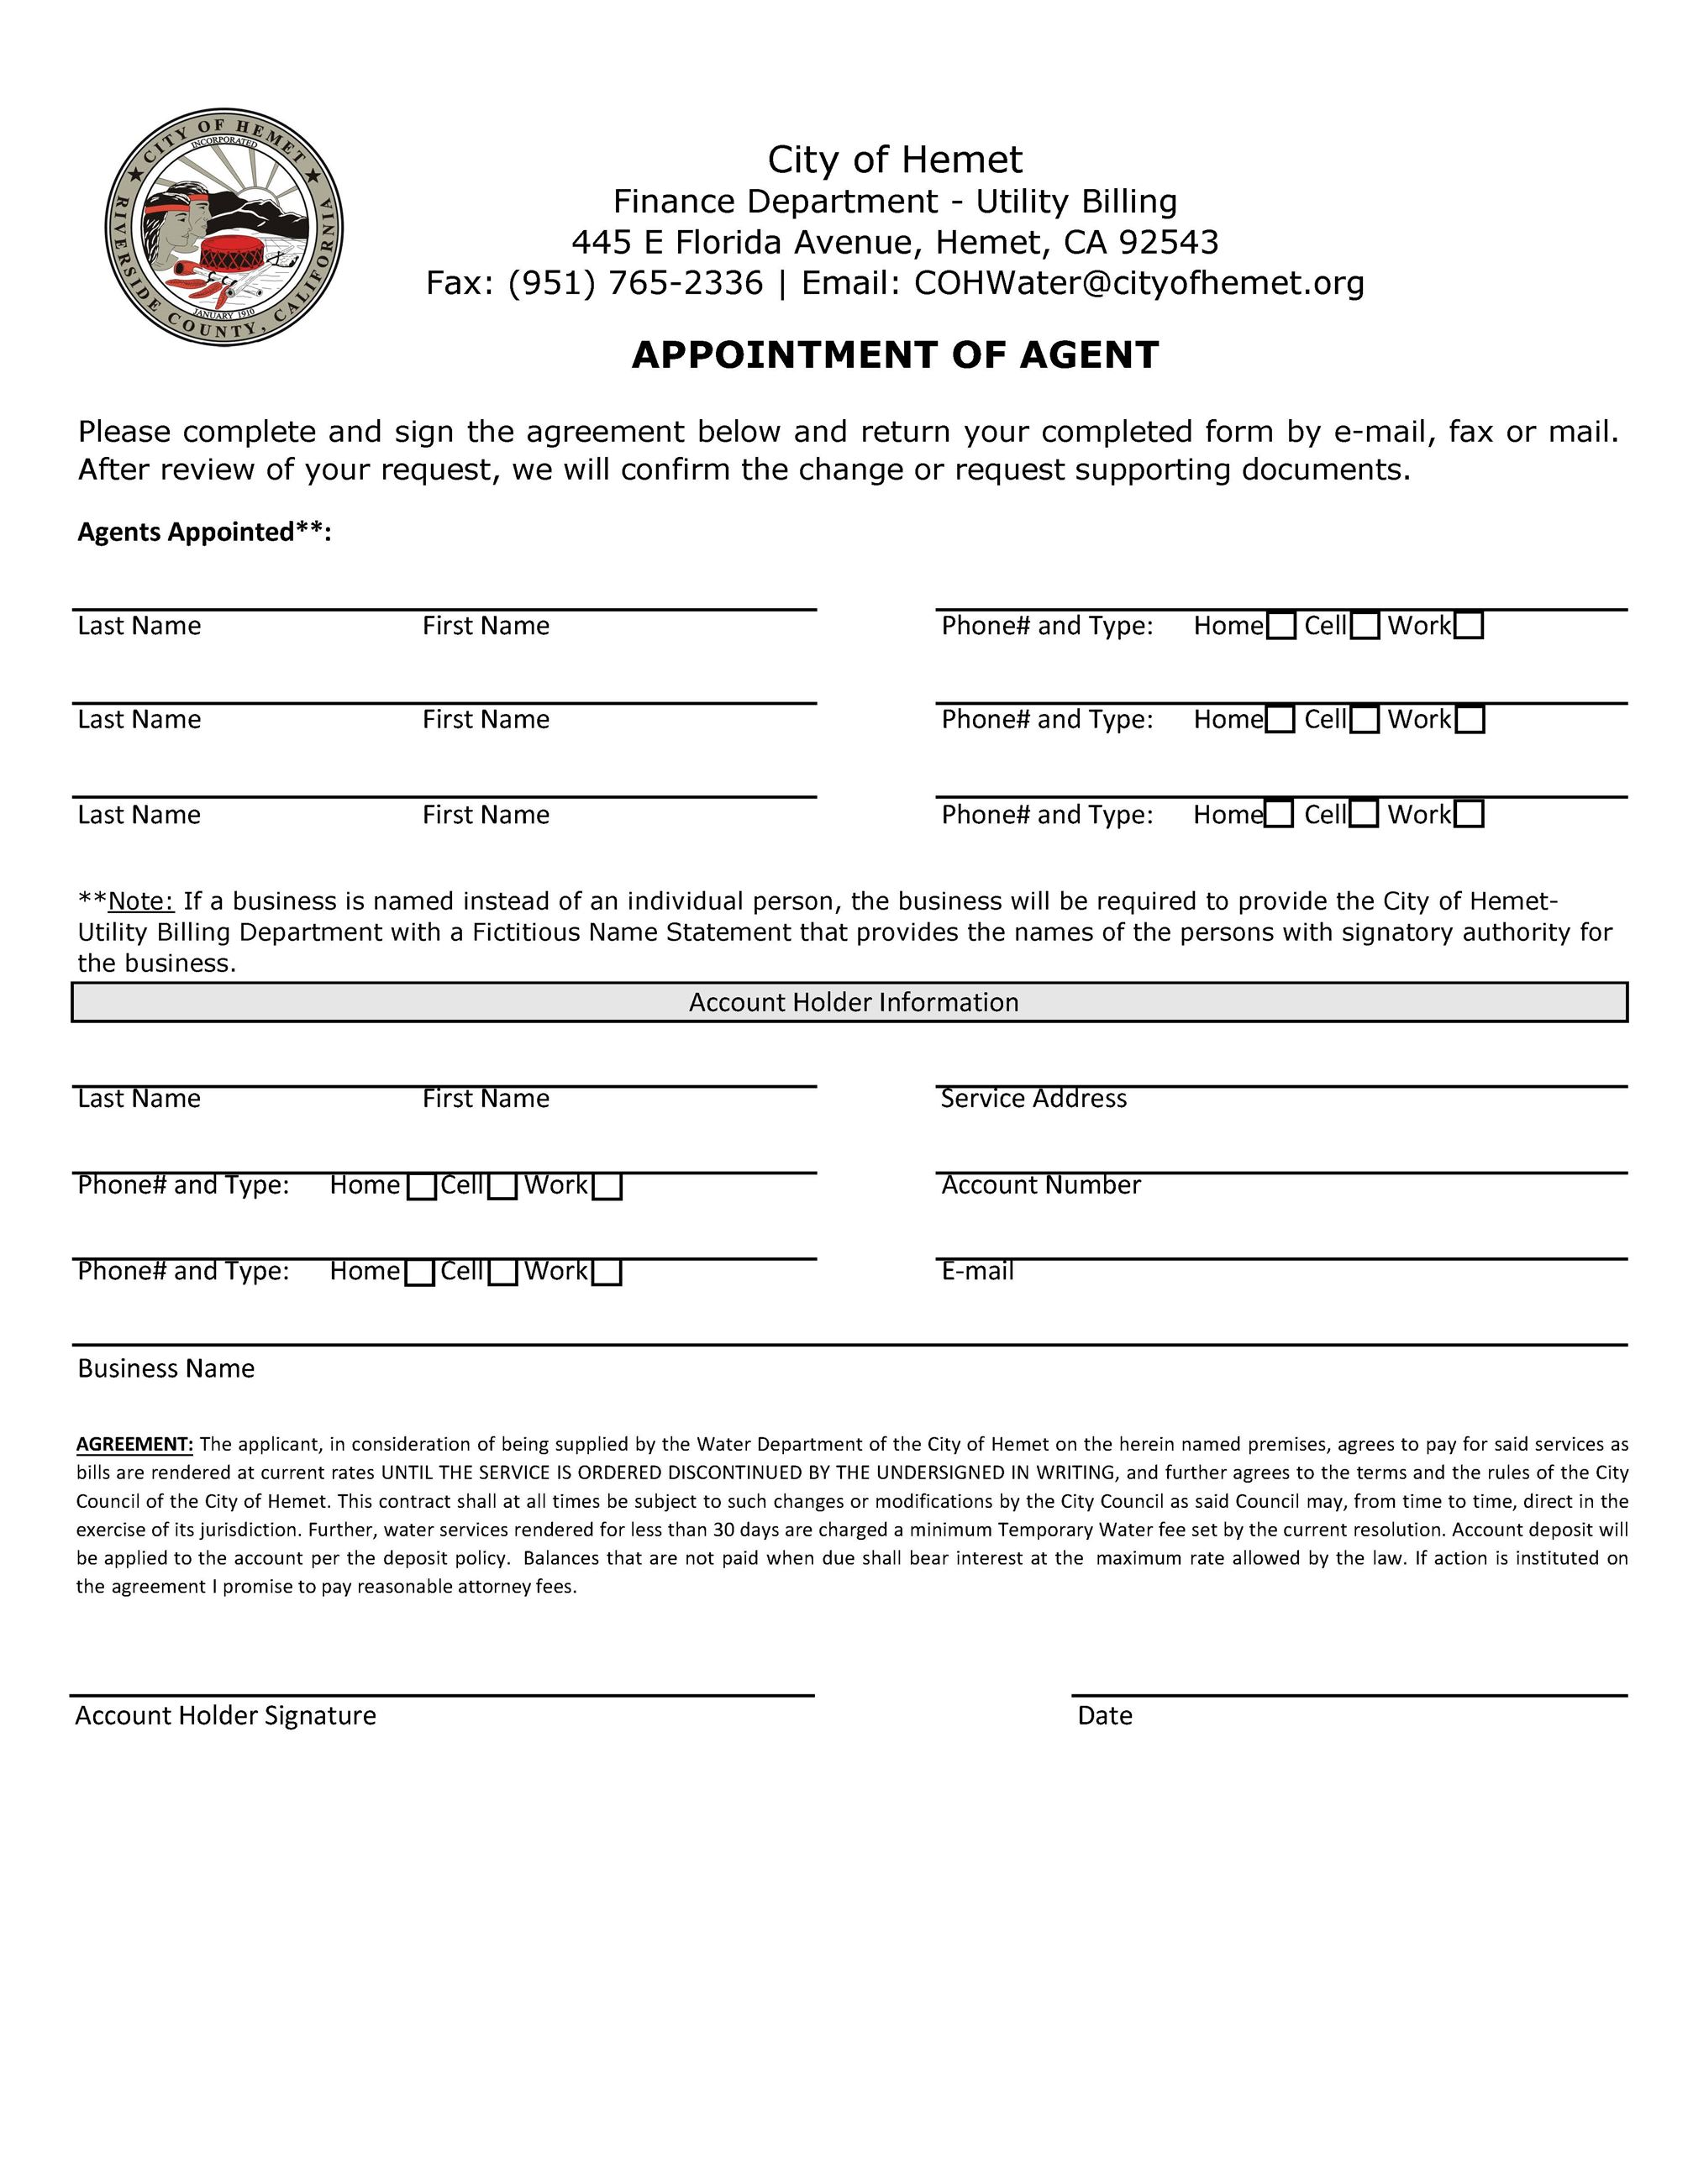 APPT OF AGENTS FORM_3-15-2021